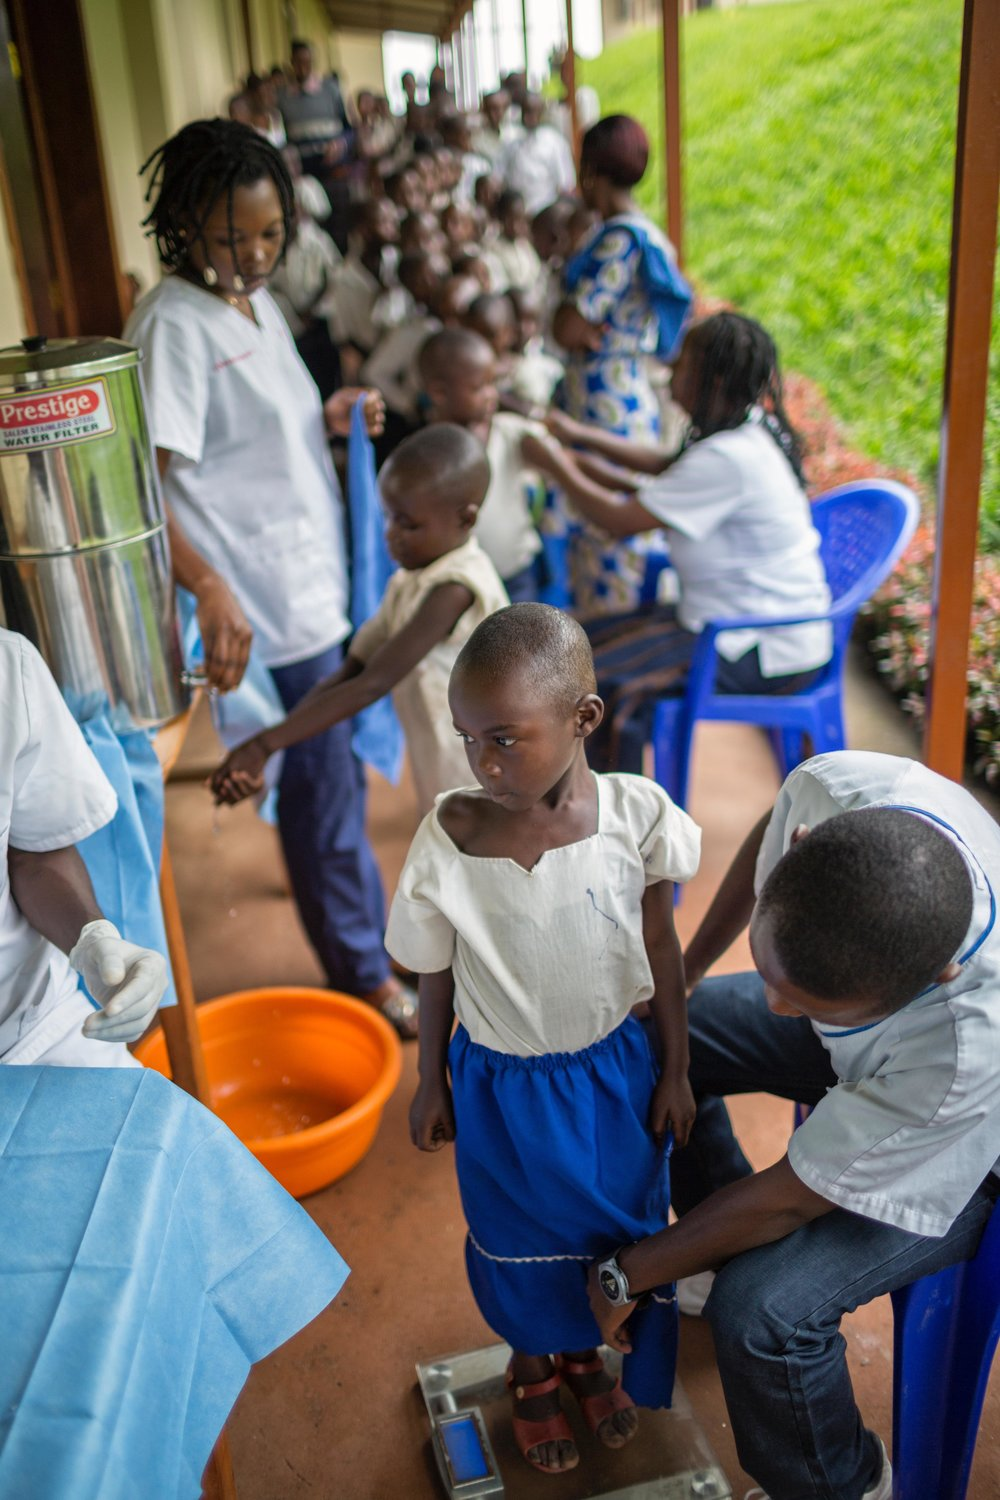 Following disease mapping in 2014 and 2014, DRC continues to see increased attention as a high priority country for the NTD Community. In order to achieve treatment goals, the END Fund will continue to seek additional funding and implementing partners.